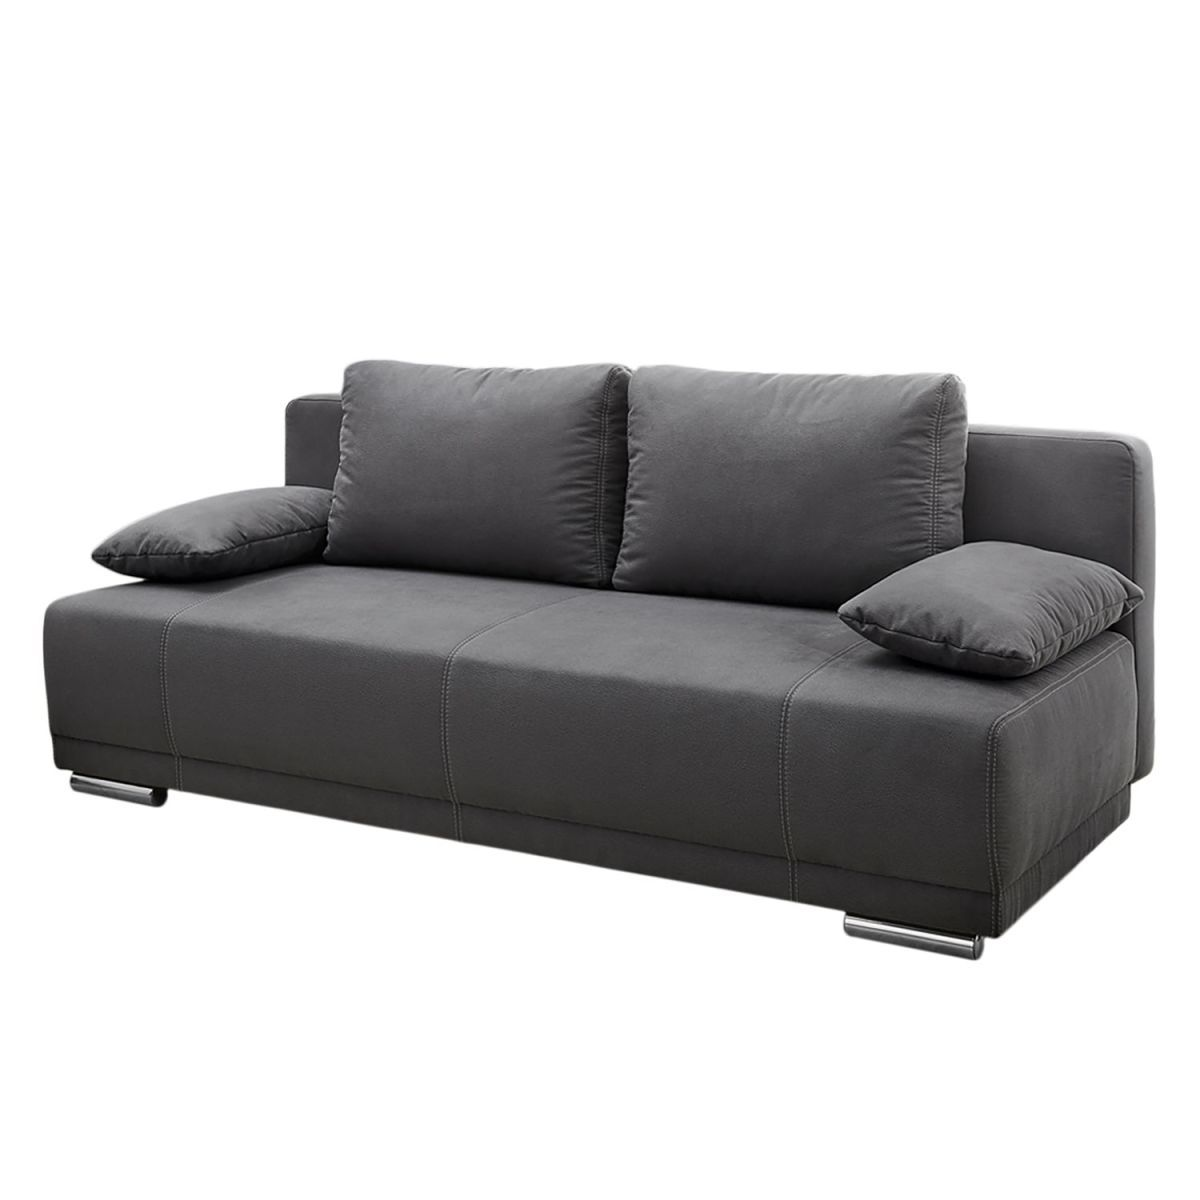 elegant schlafsofa freeland microfaser grau fredriks jetzt bestellen unter with fredriks modern. Black Bedroom Furniture Sets. Home Design Ideas